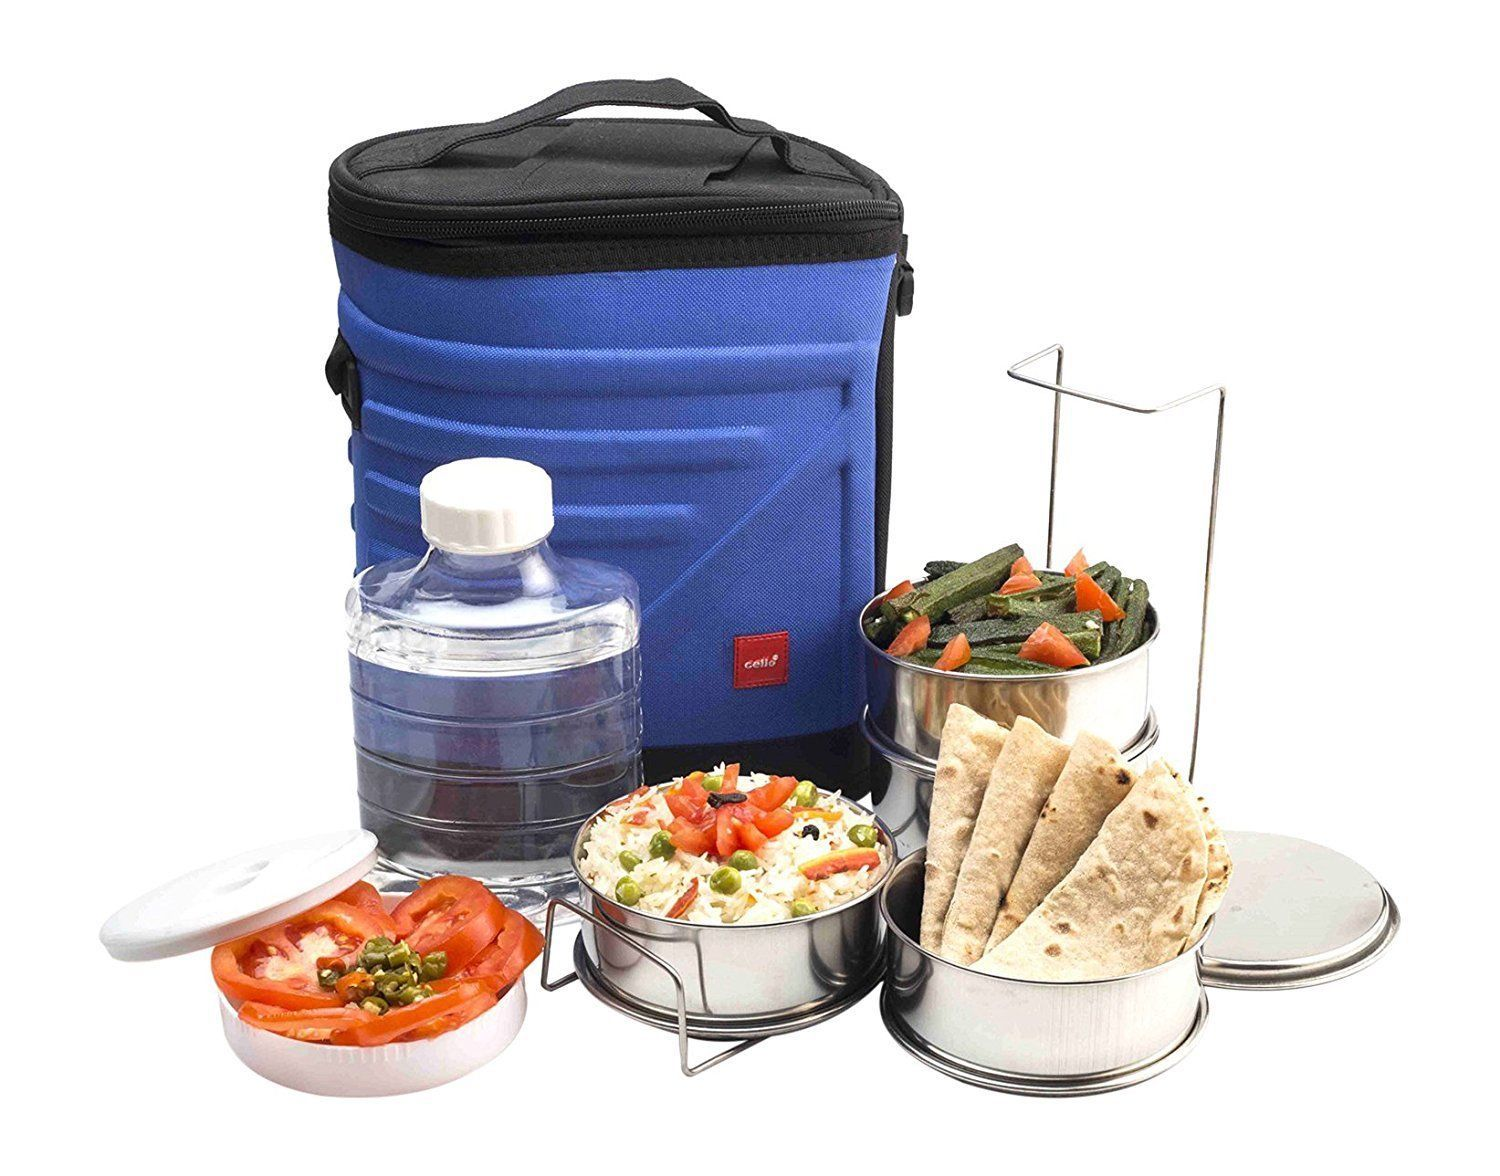 Cello Archo Plastic 3 Container Lunch Packs Blue